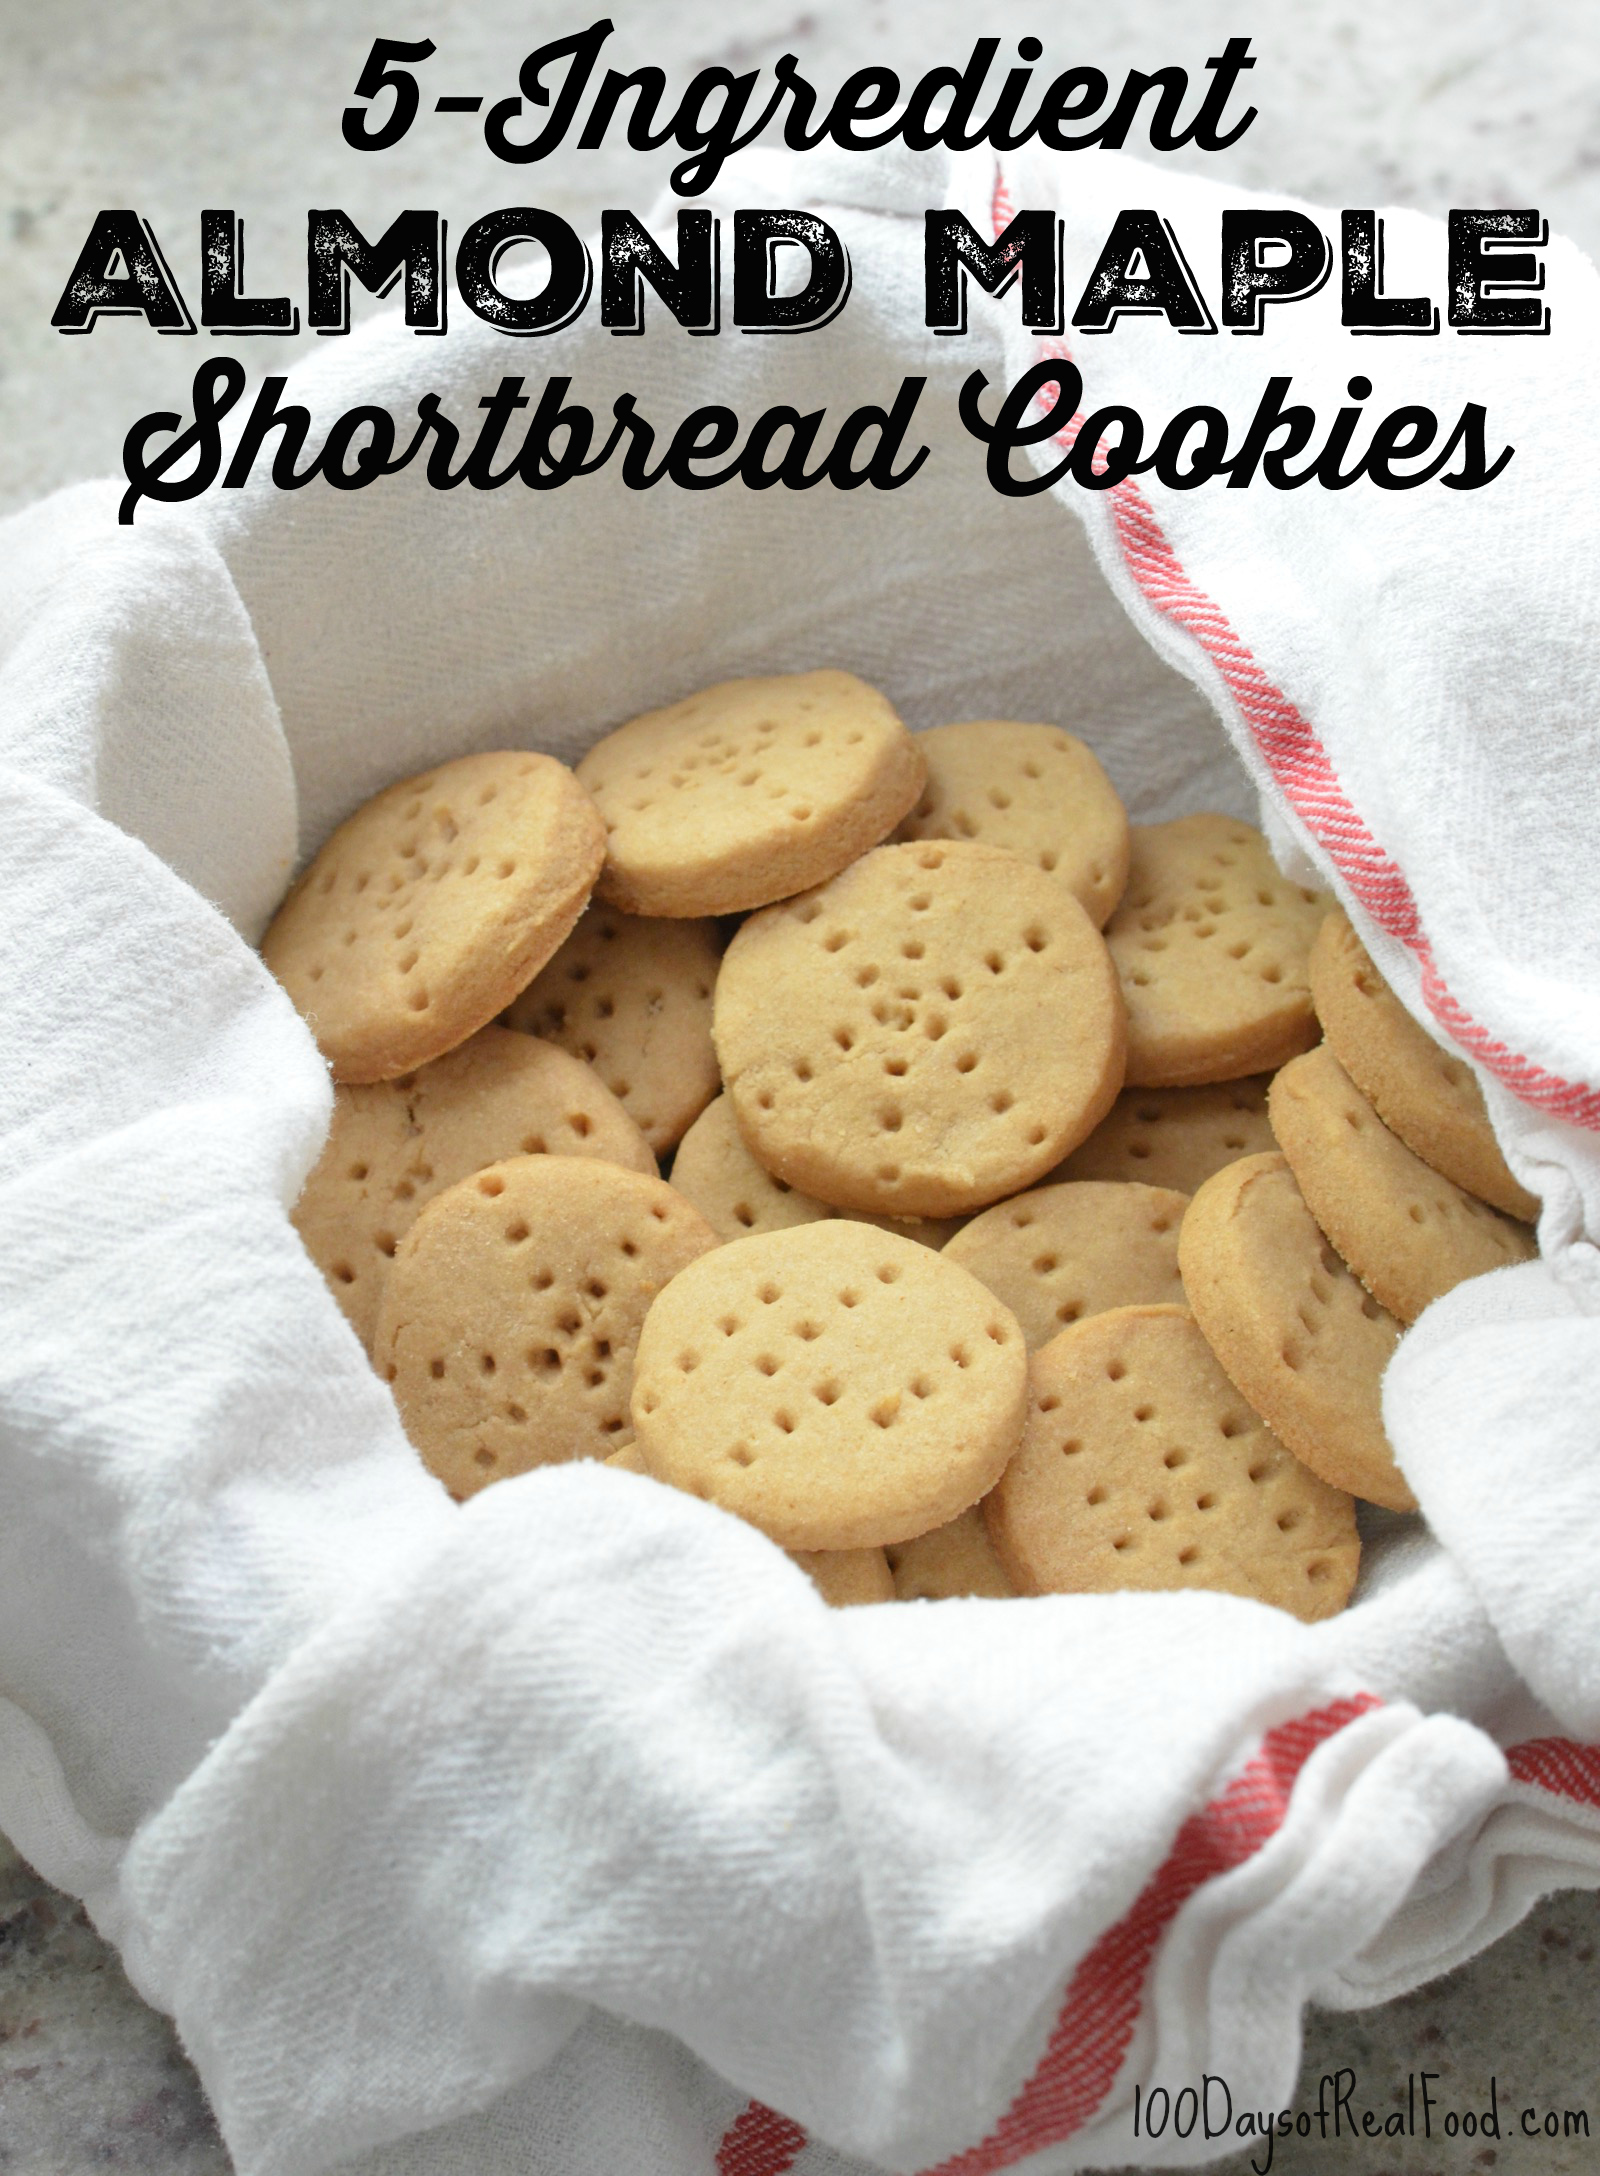 5-Ingredient Almond Maple Shortbread Cookies